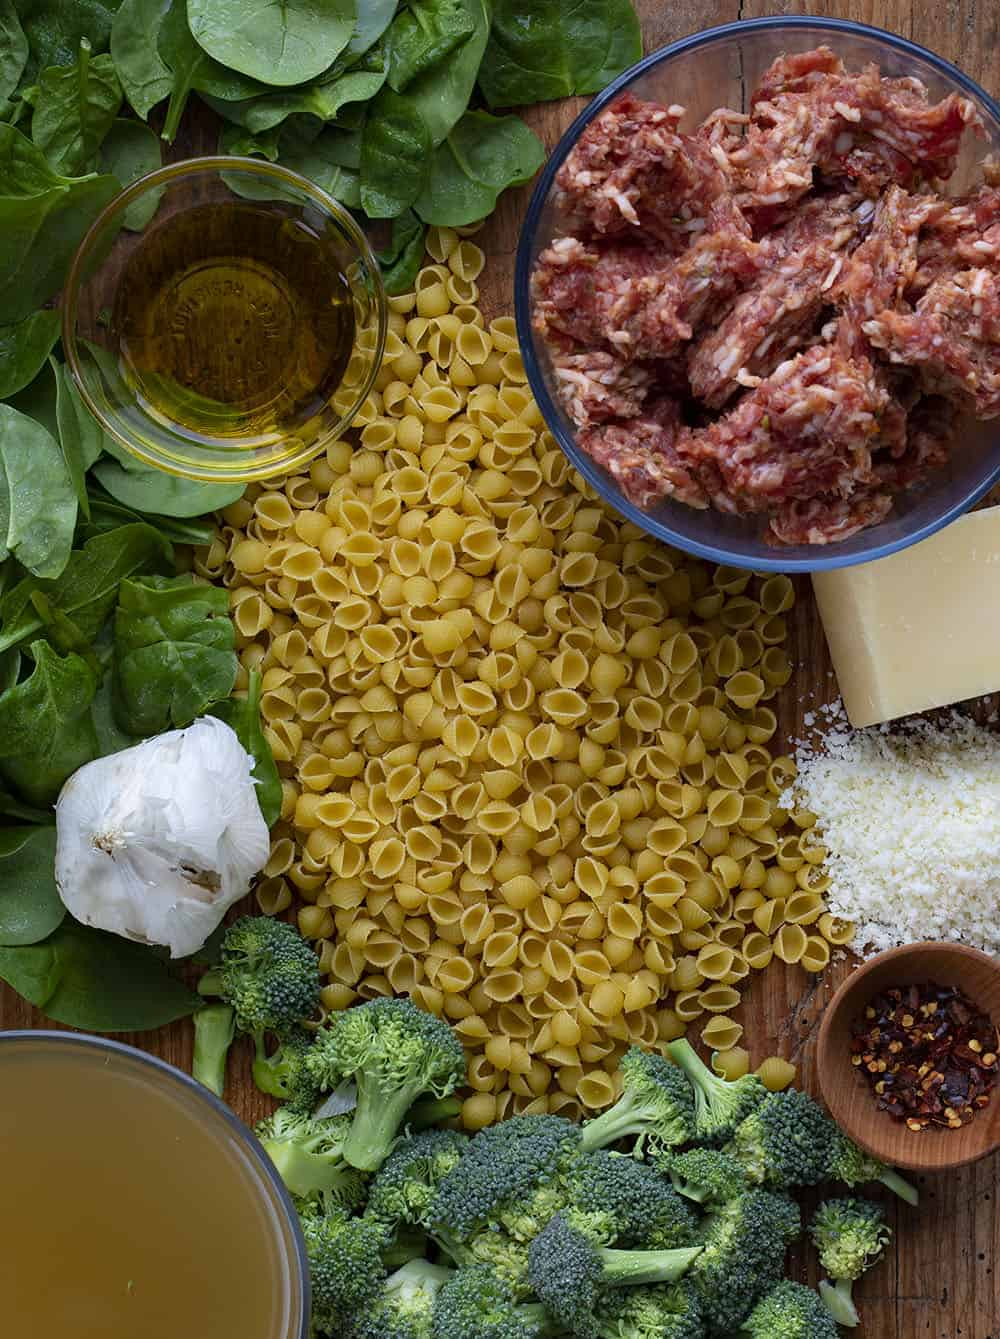 Raw Ingredients for Broccoli and Sausage Pasta